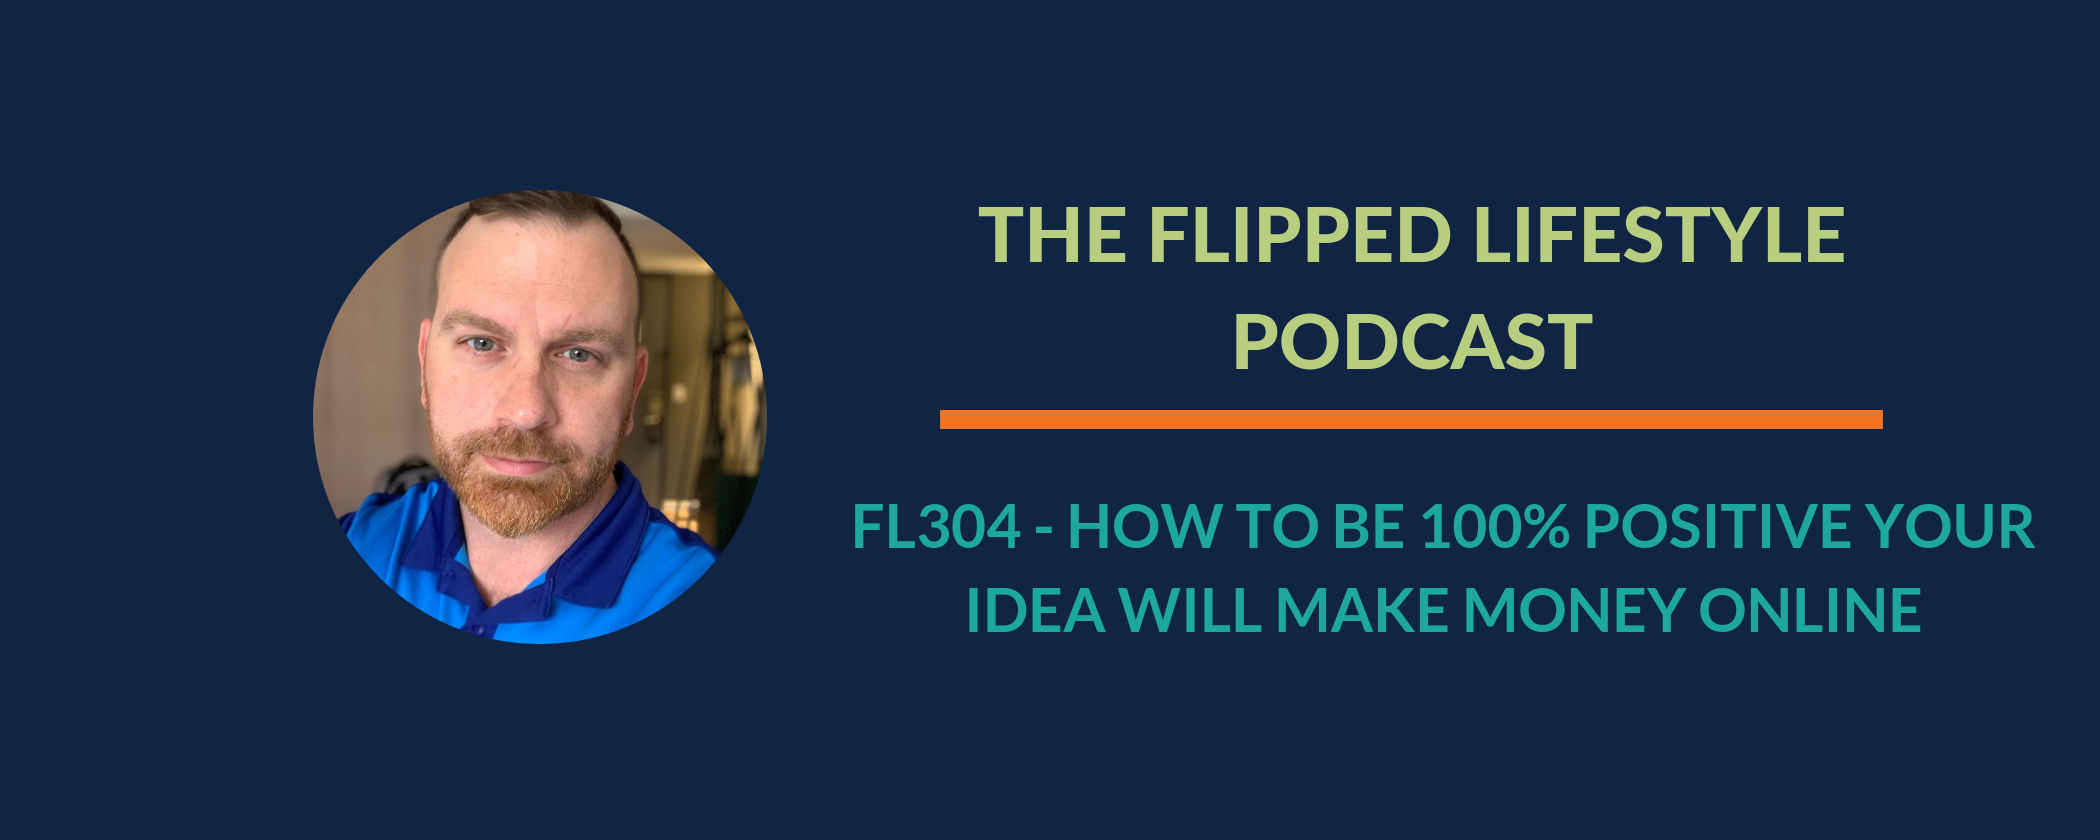 EARLY PODCAST:  FL304 - How to be 100% positive your idea will make money online